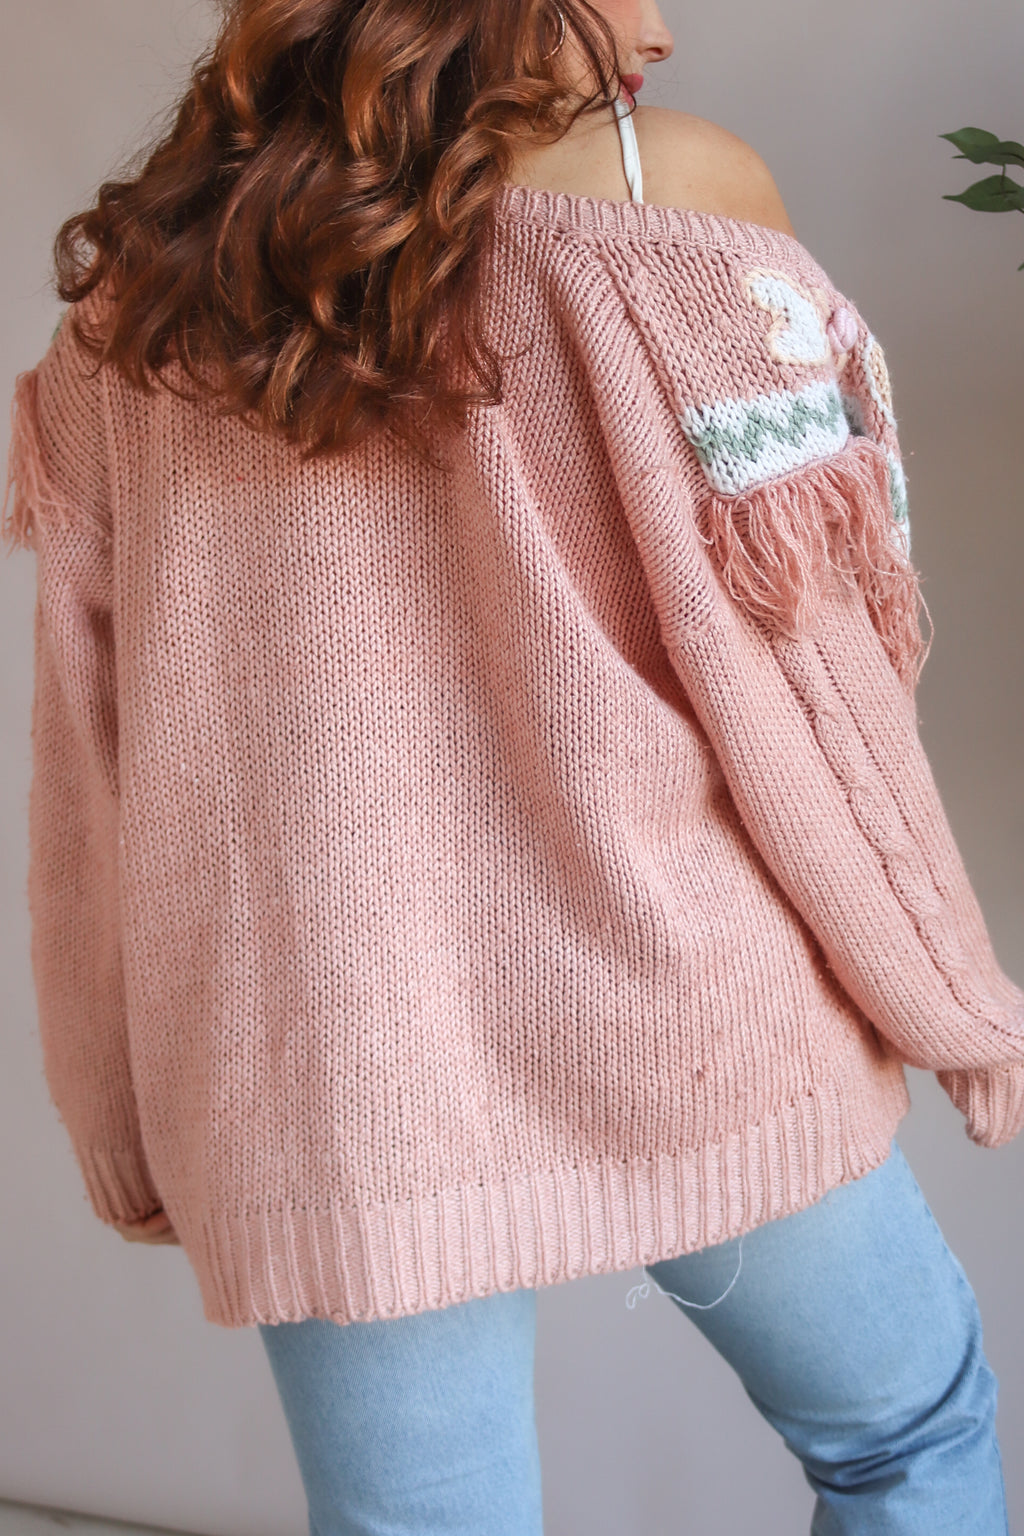 Long Sleeve Cardigan in Pink - S